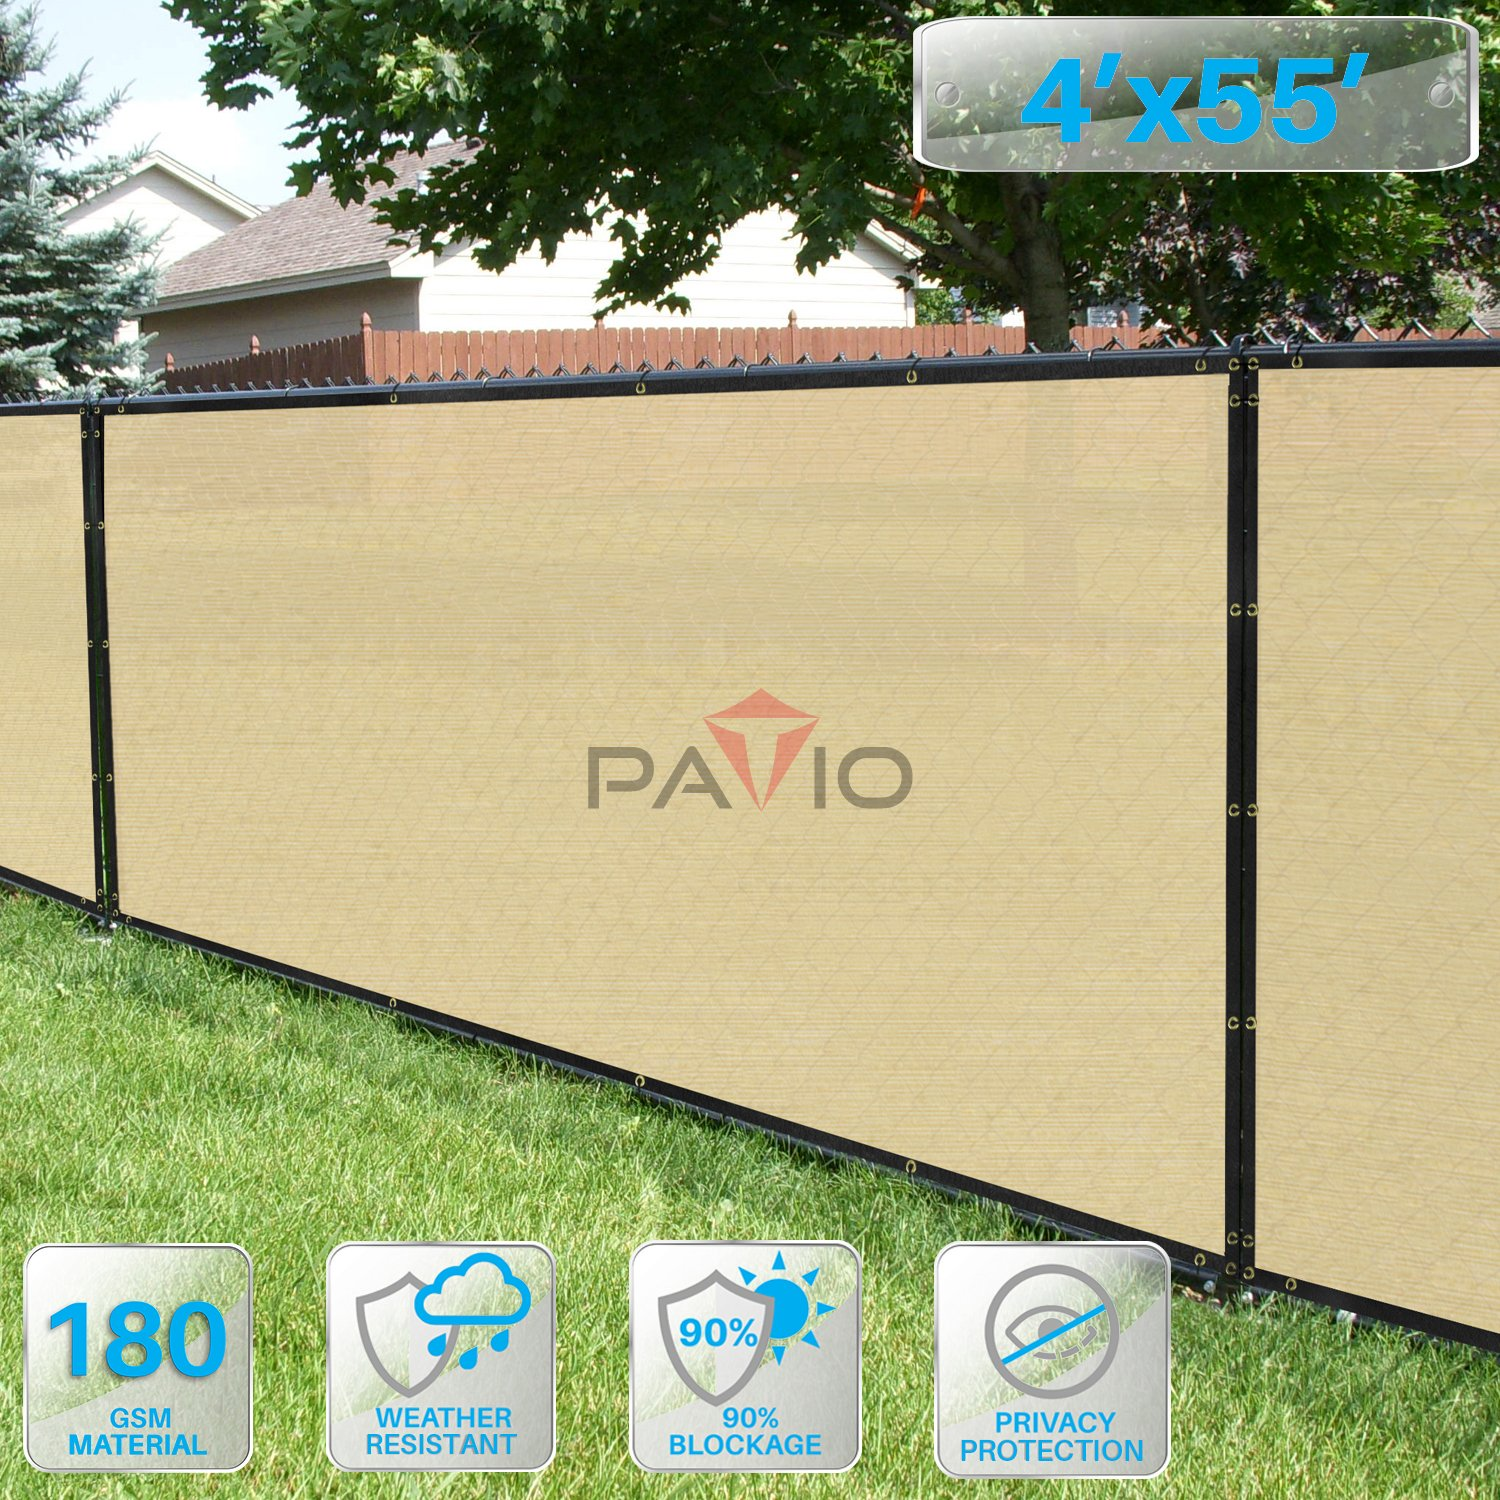 Patio Fence Privacy Screen 4 x 55 , Pergola Shade Cover Canopy Sun Block, Heavy Duty Fence Privacy Netting, Commercial Grade Privacy Fencing, 180 GSM, 90 Privacy Blockage Beige